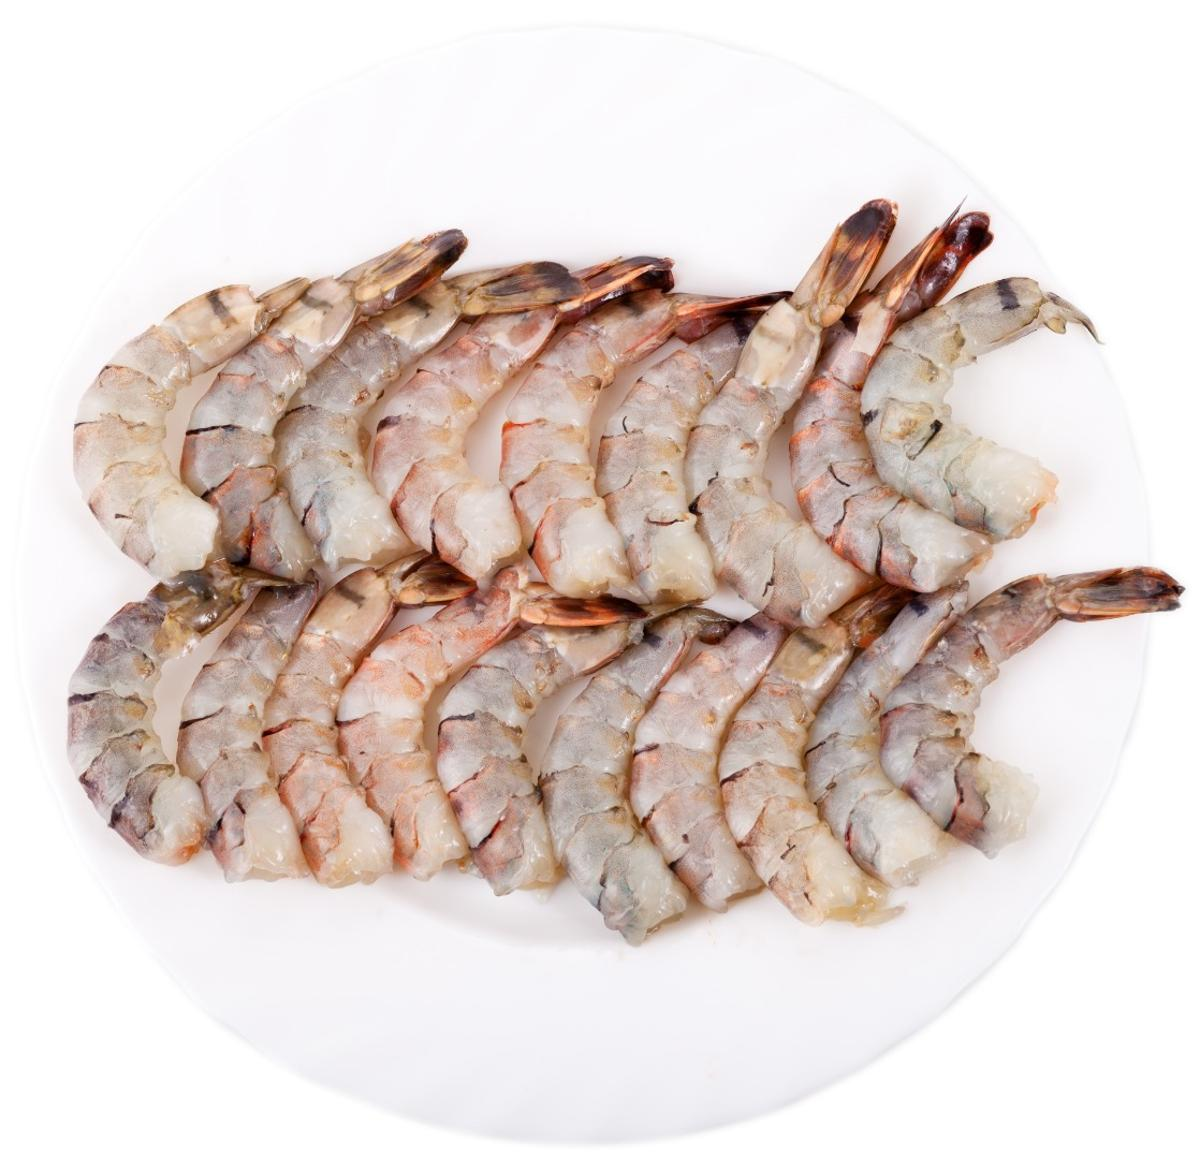 The film has been used to eradicate E. coli and Salmonella bacteria in tiger prawns